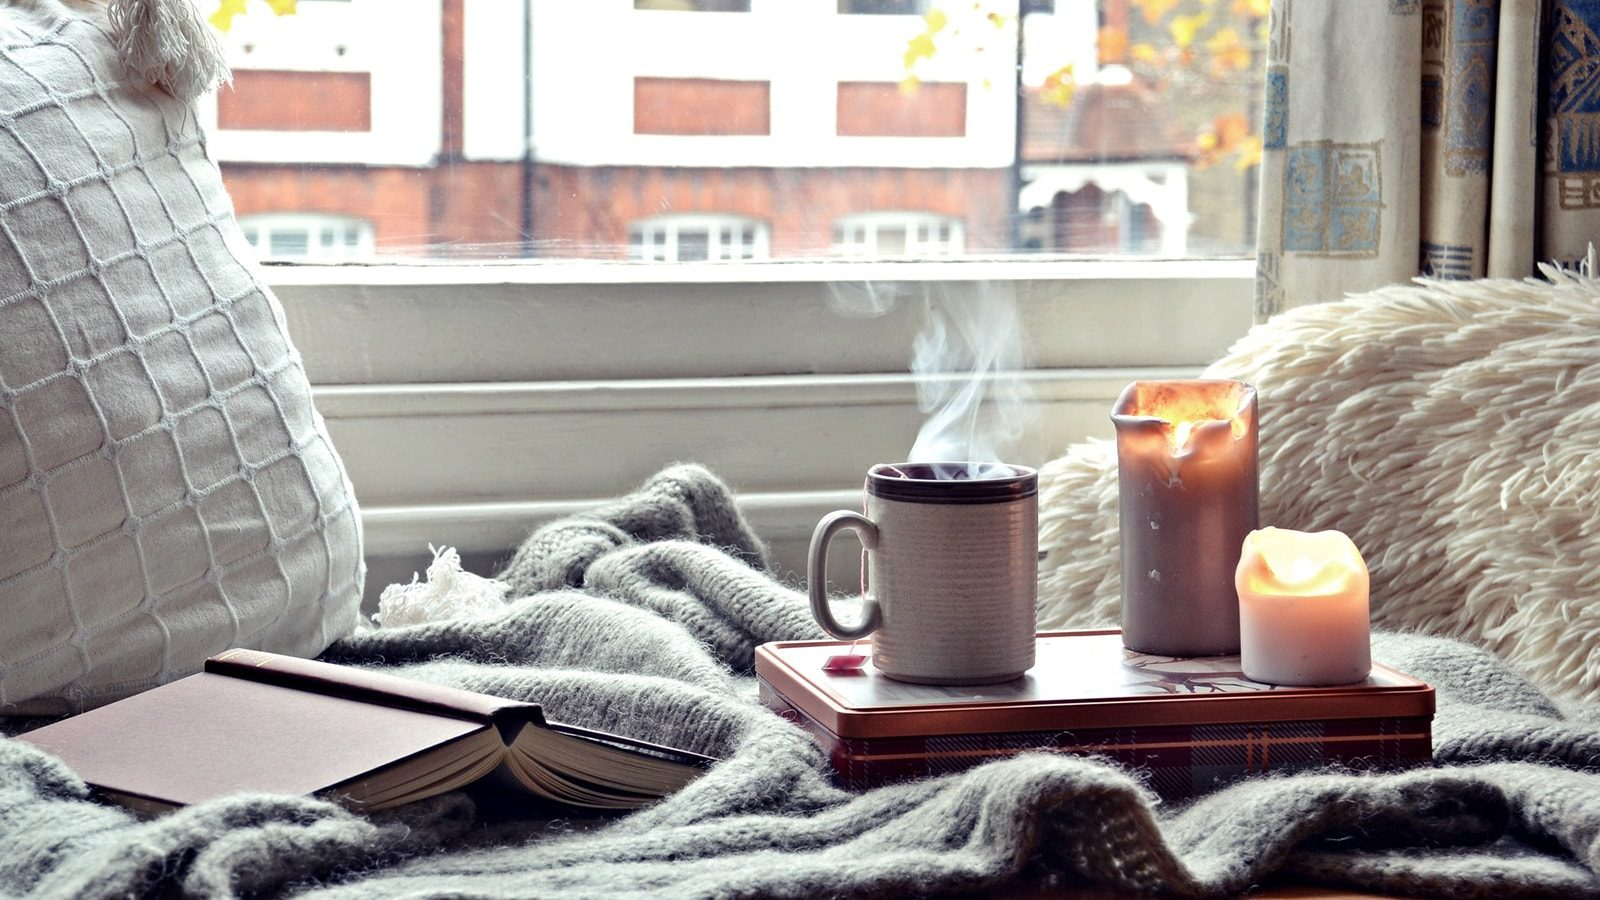 House to Home, 7 Tips to Make Your House Feel More like a Cozy Home